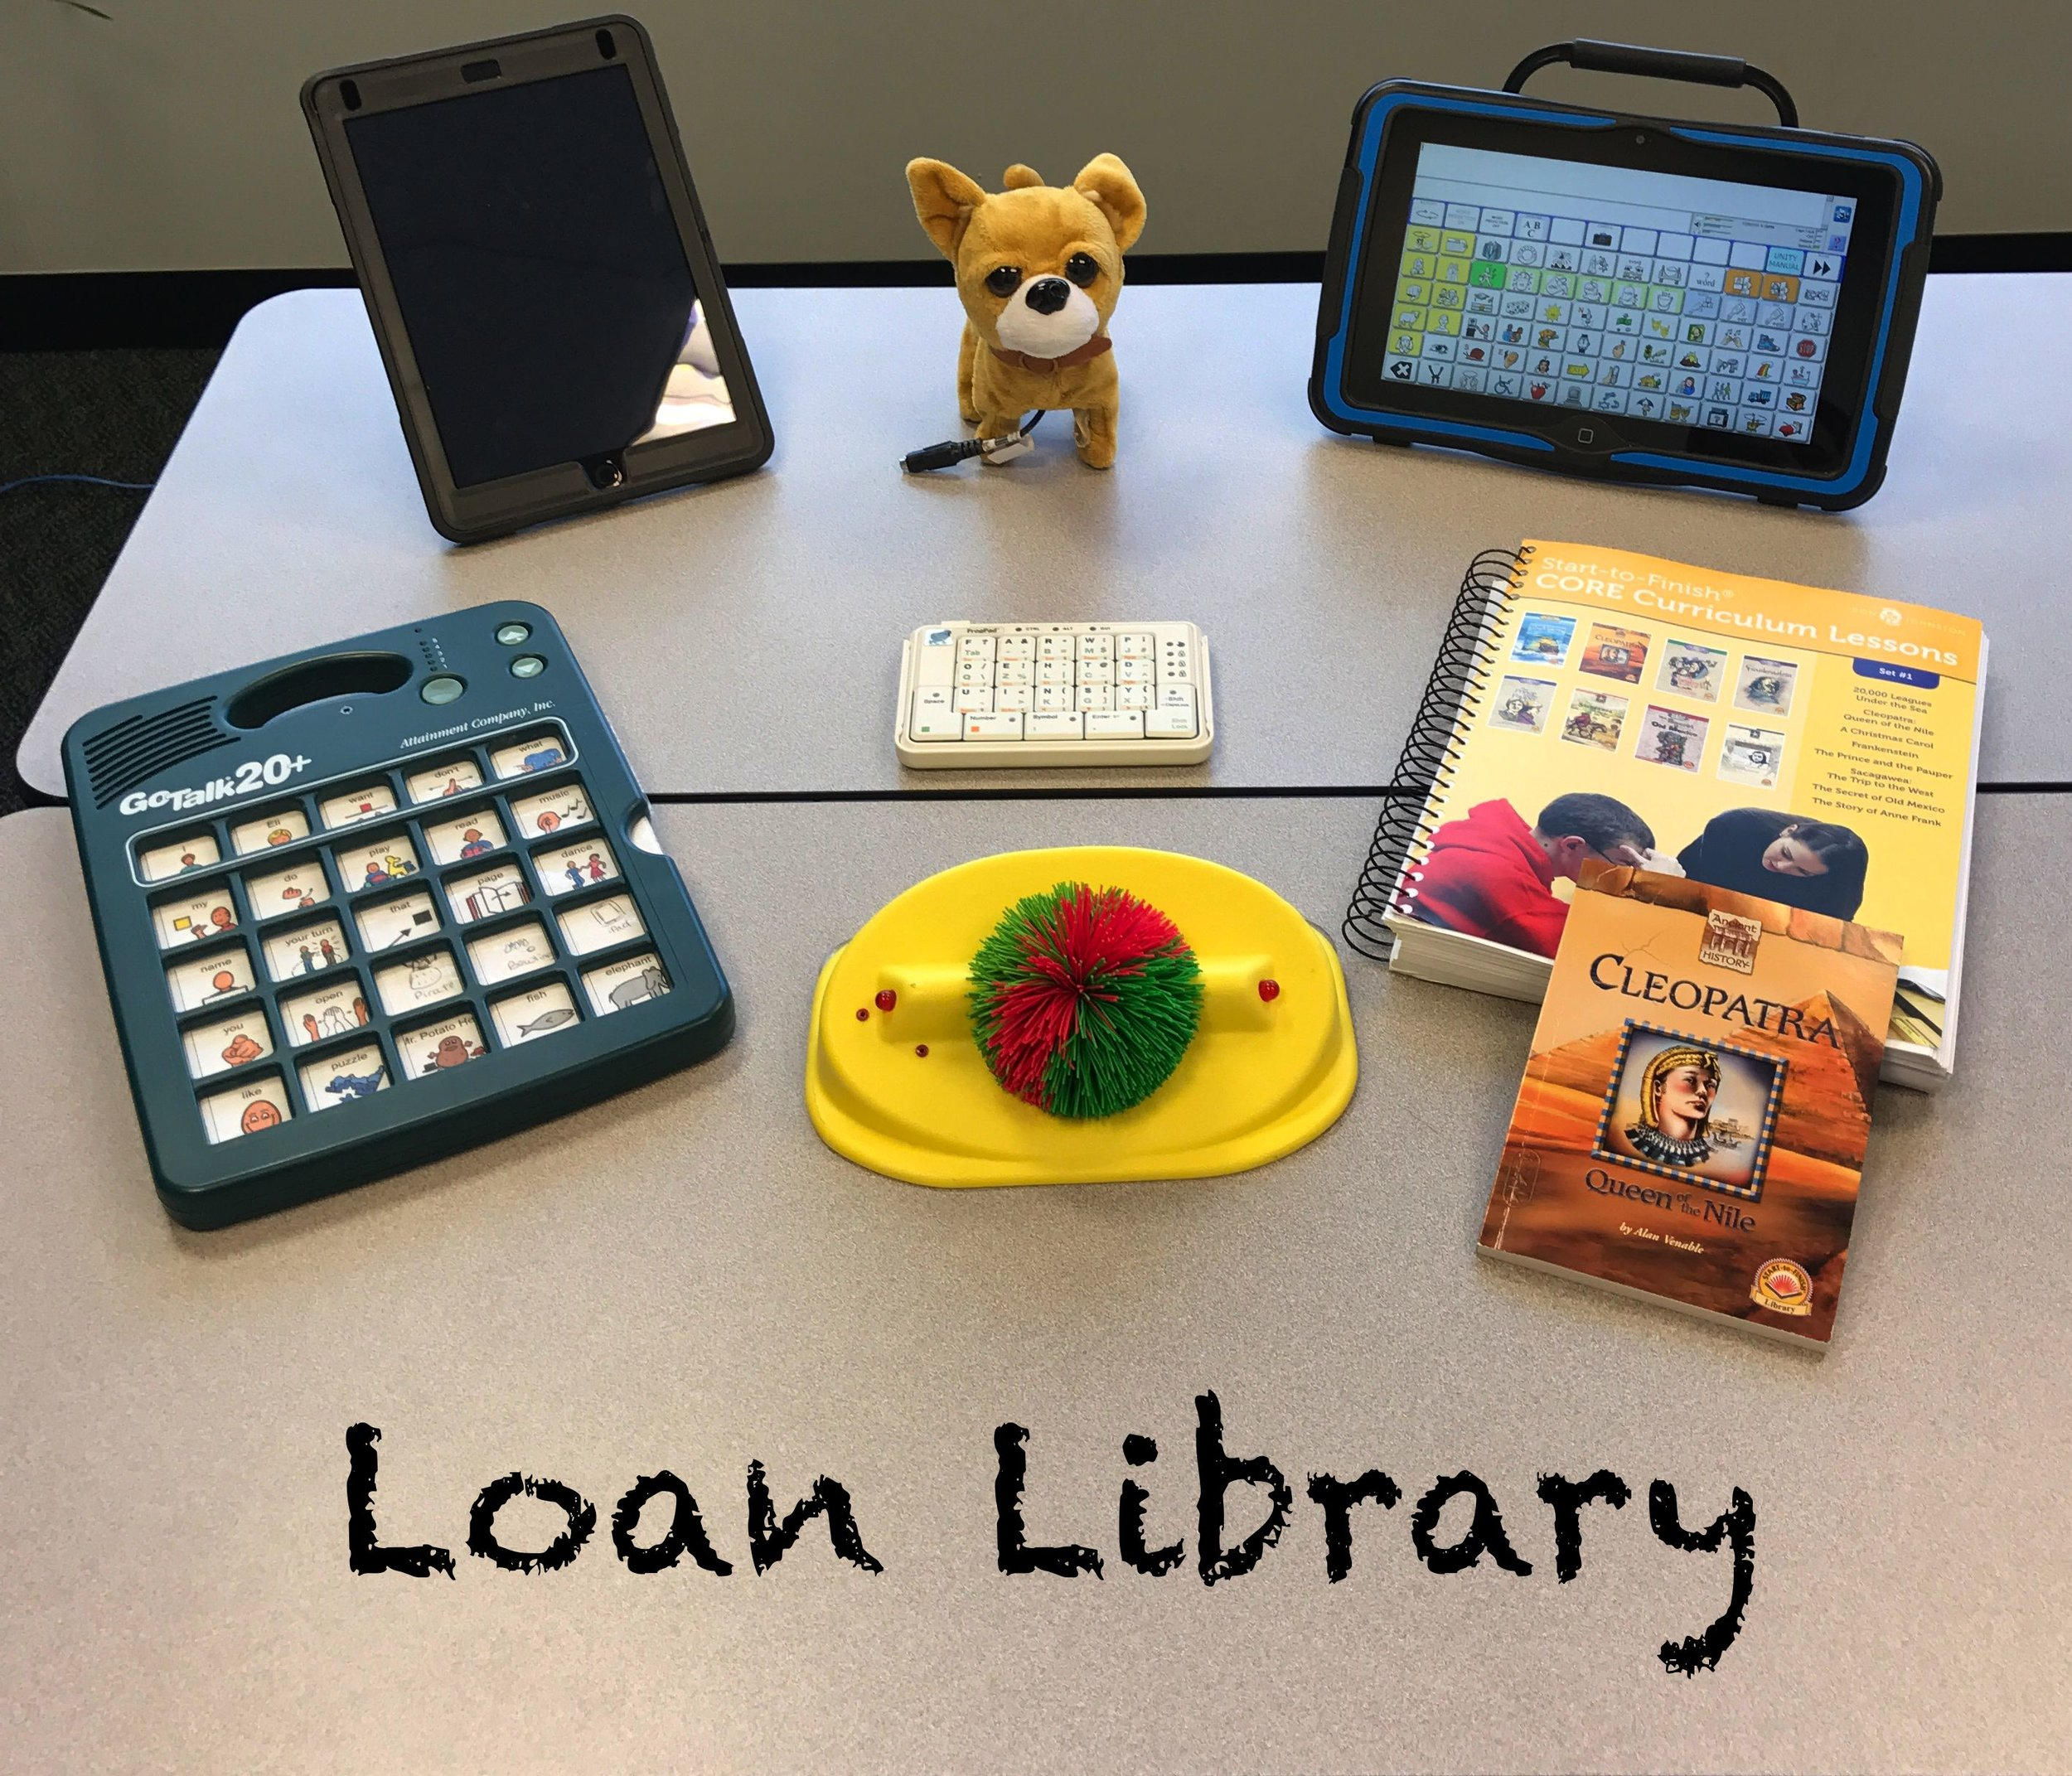 click here to learn more about the loan library